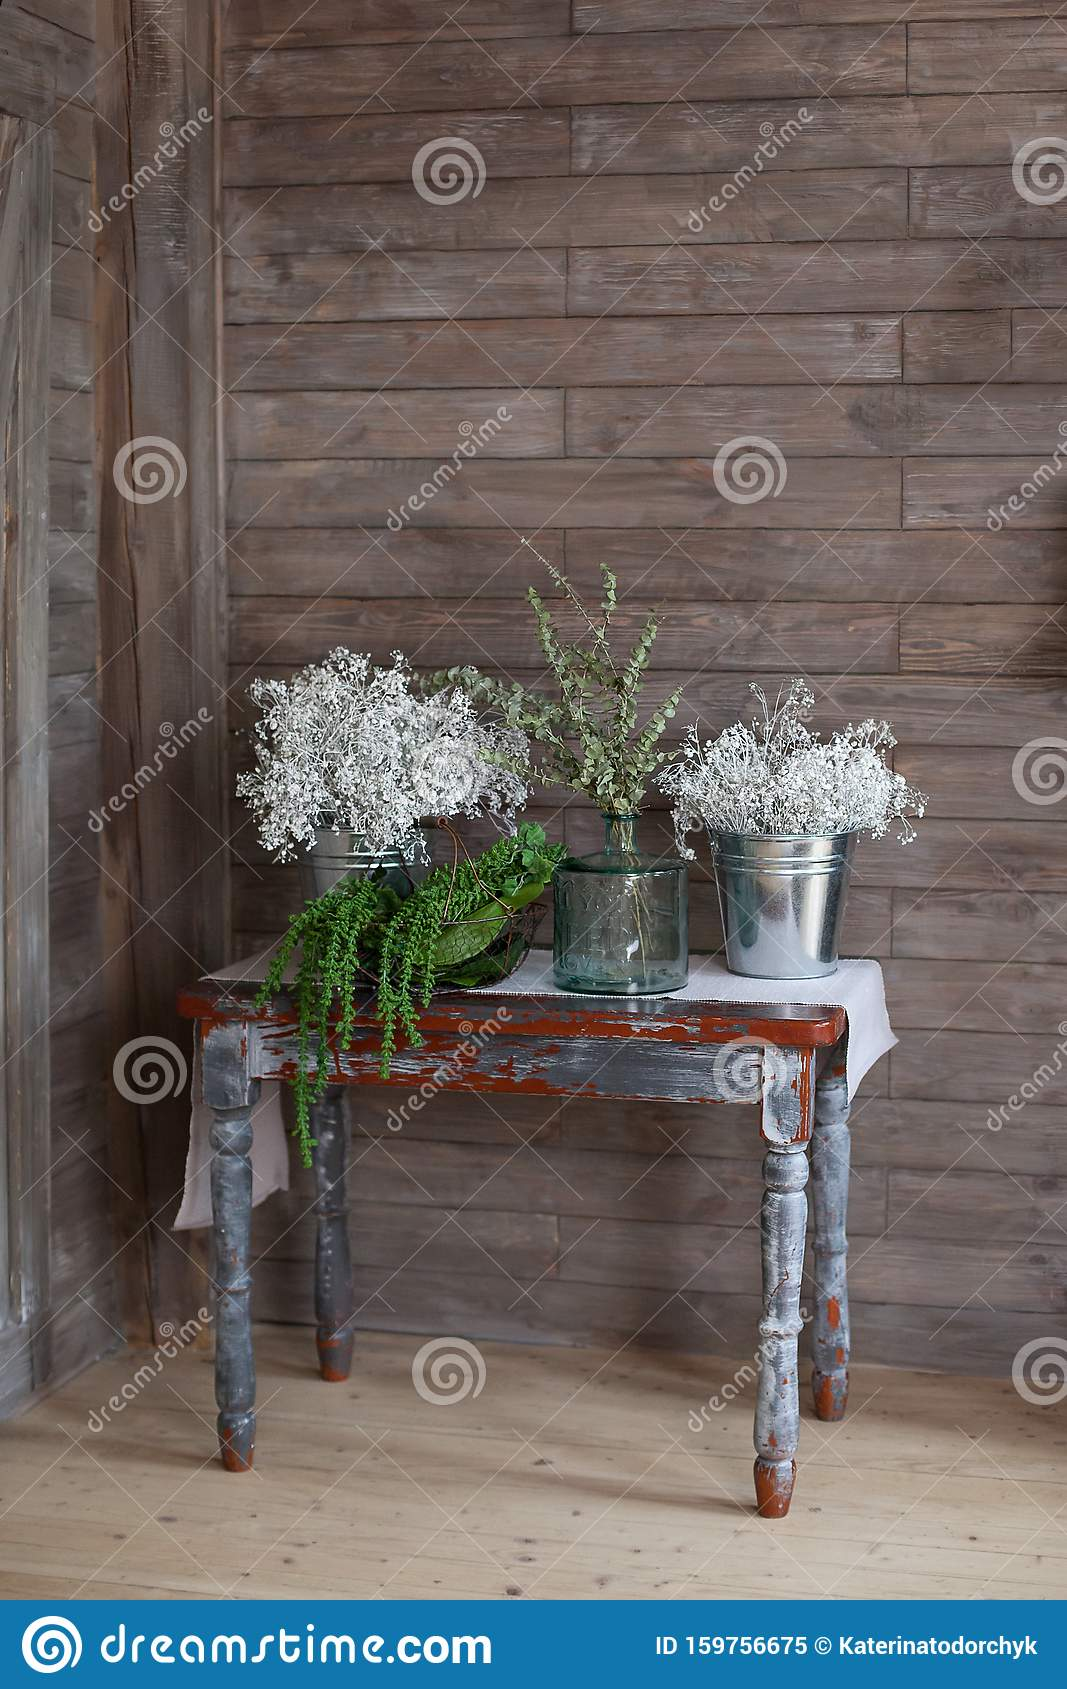 Eucalyptus Sprigs With Fresh Leaves In Vases On A Wooden